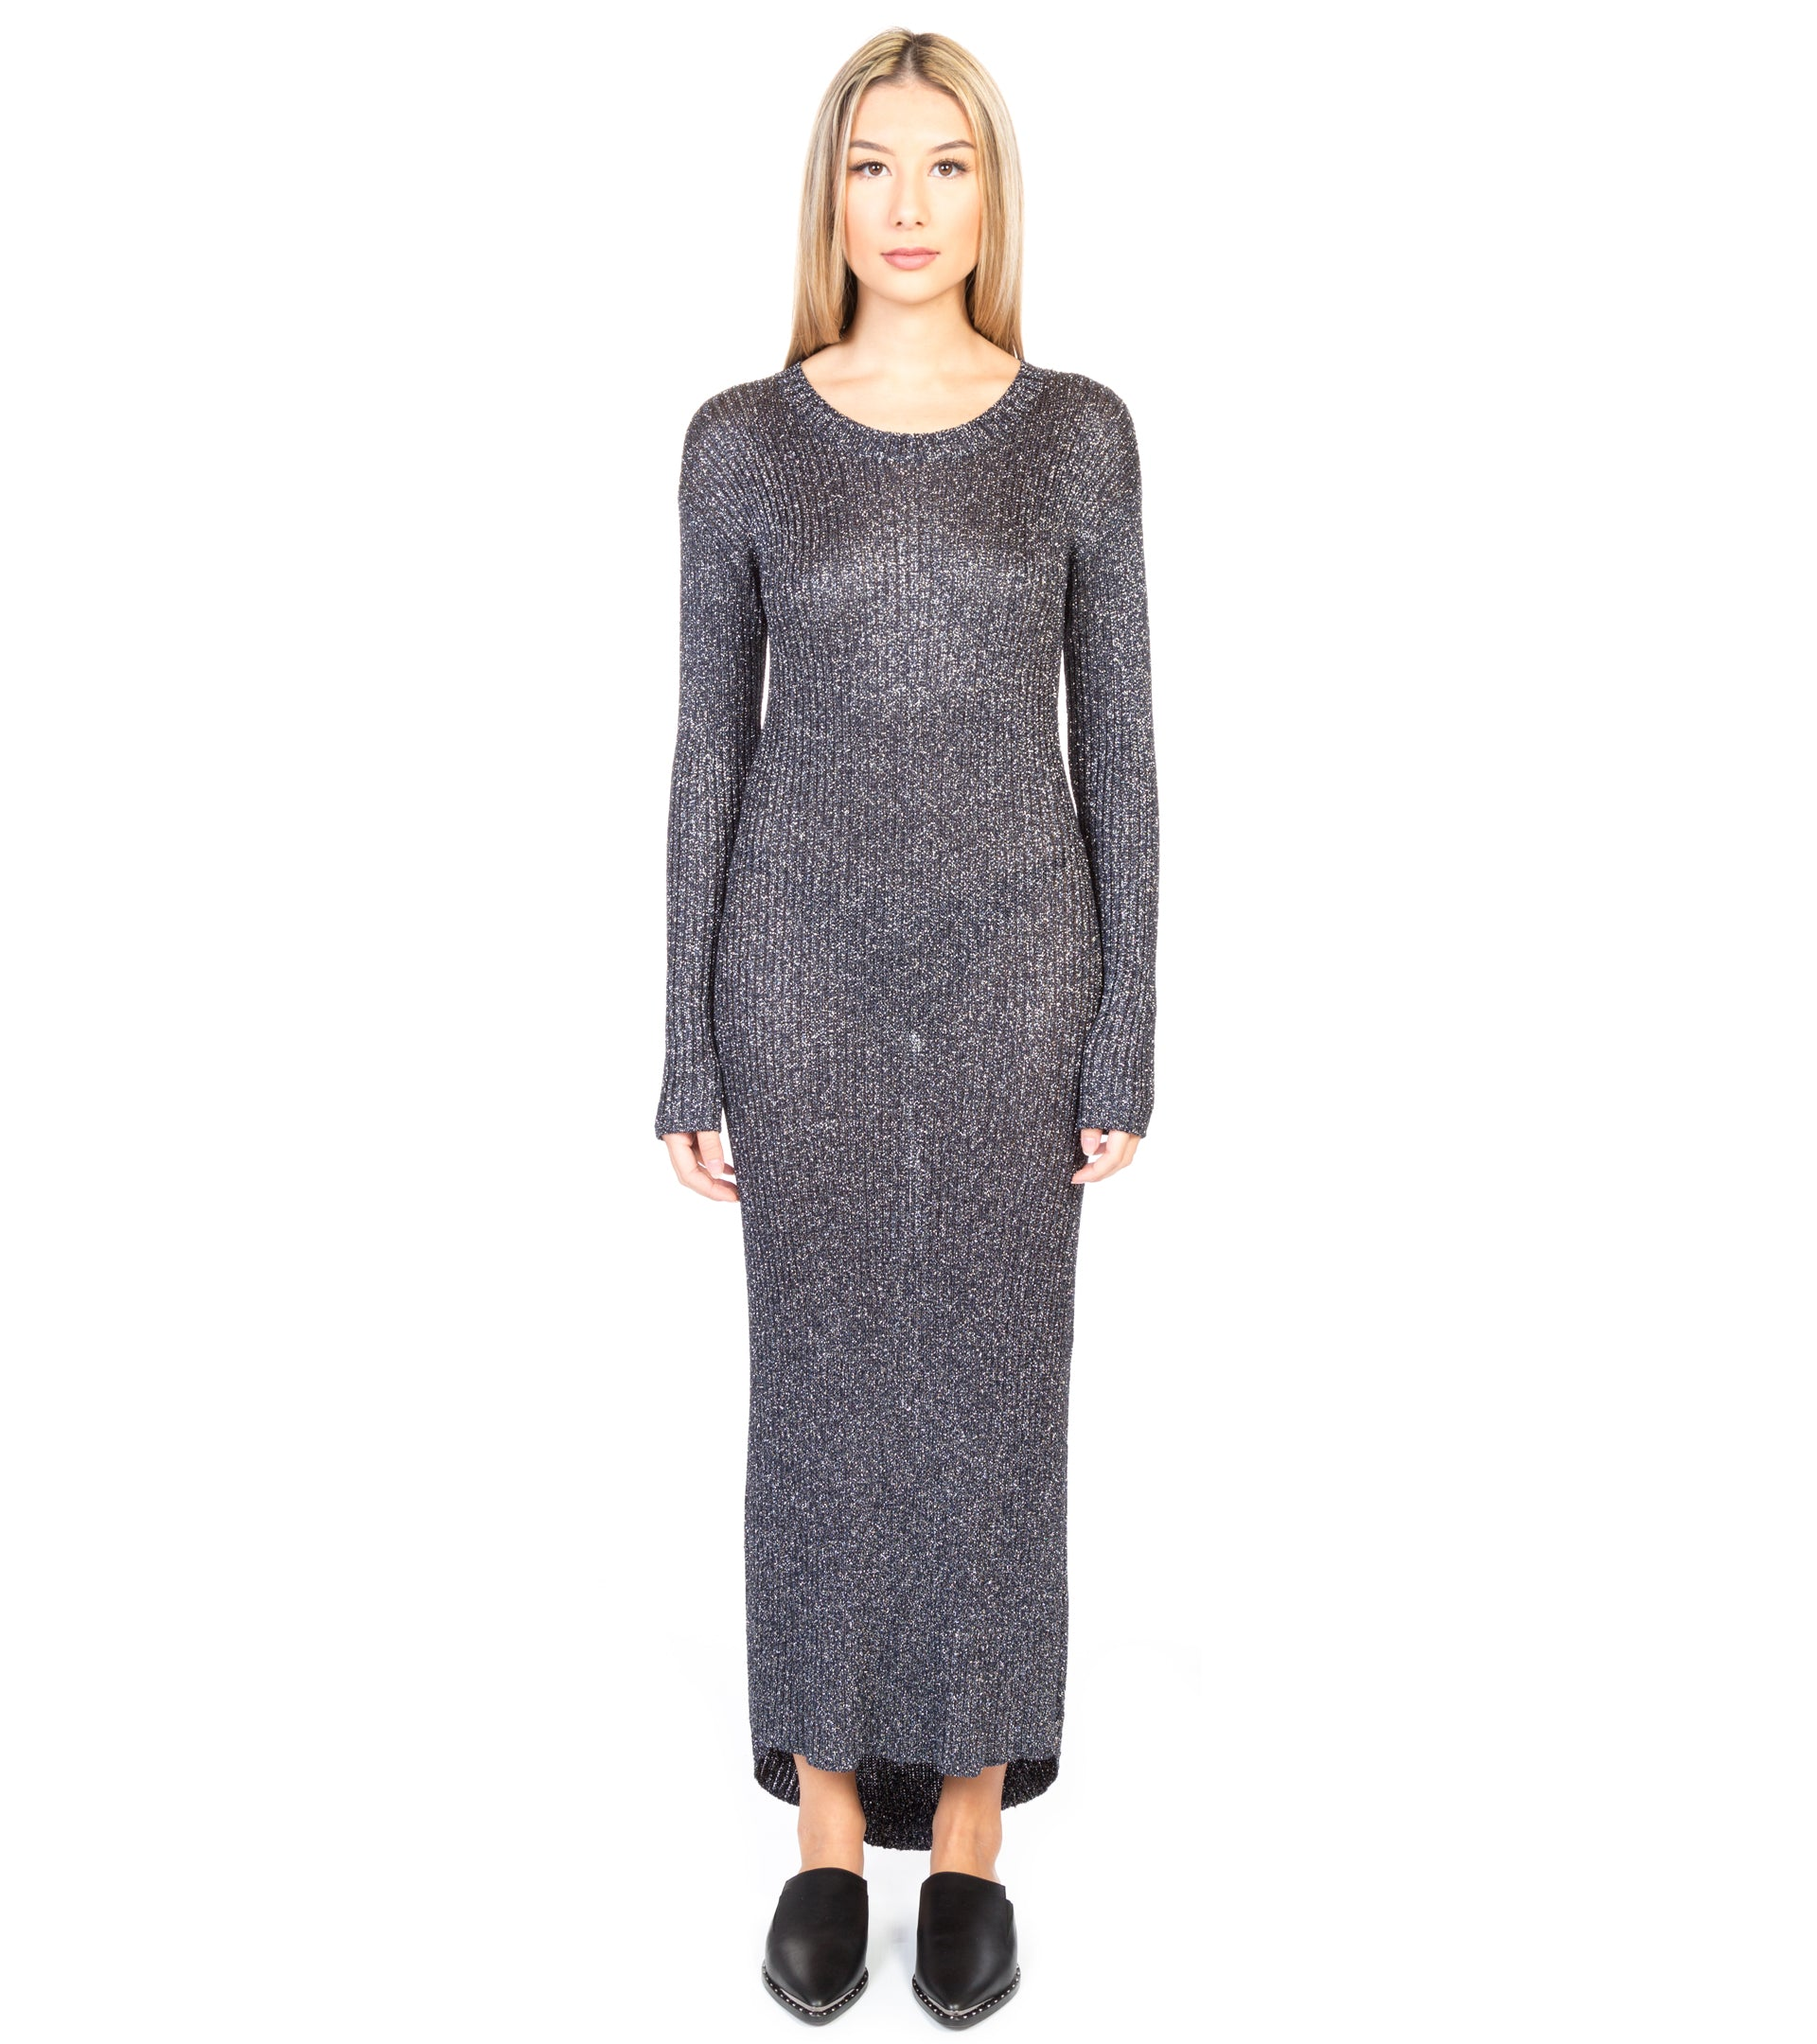 SUPERIOR FAME METALLIC KNIT DRESS